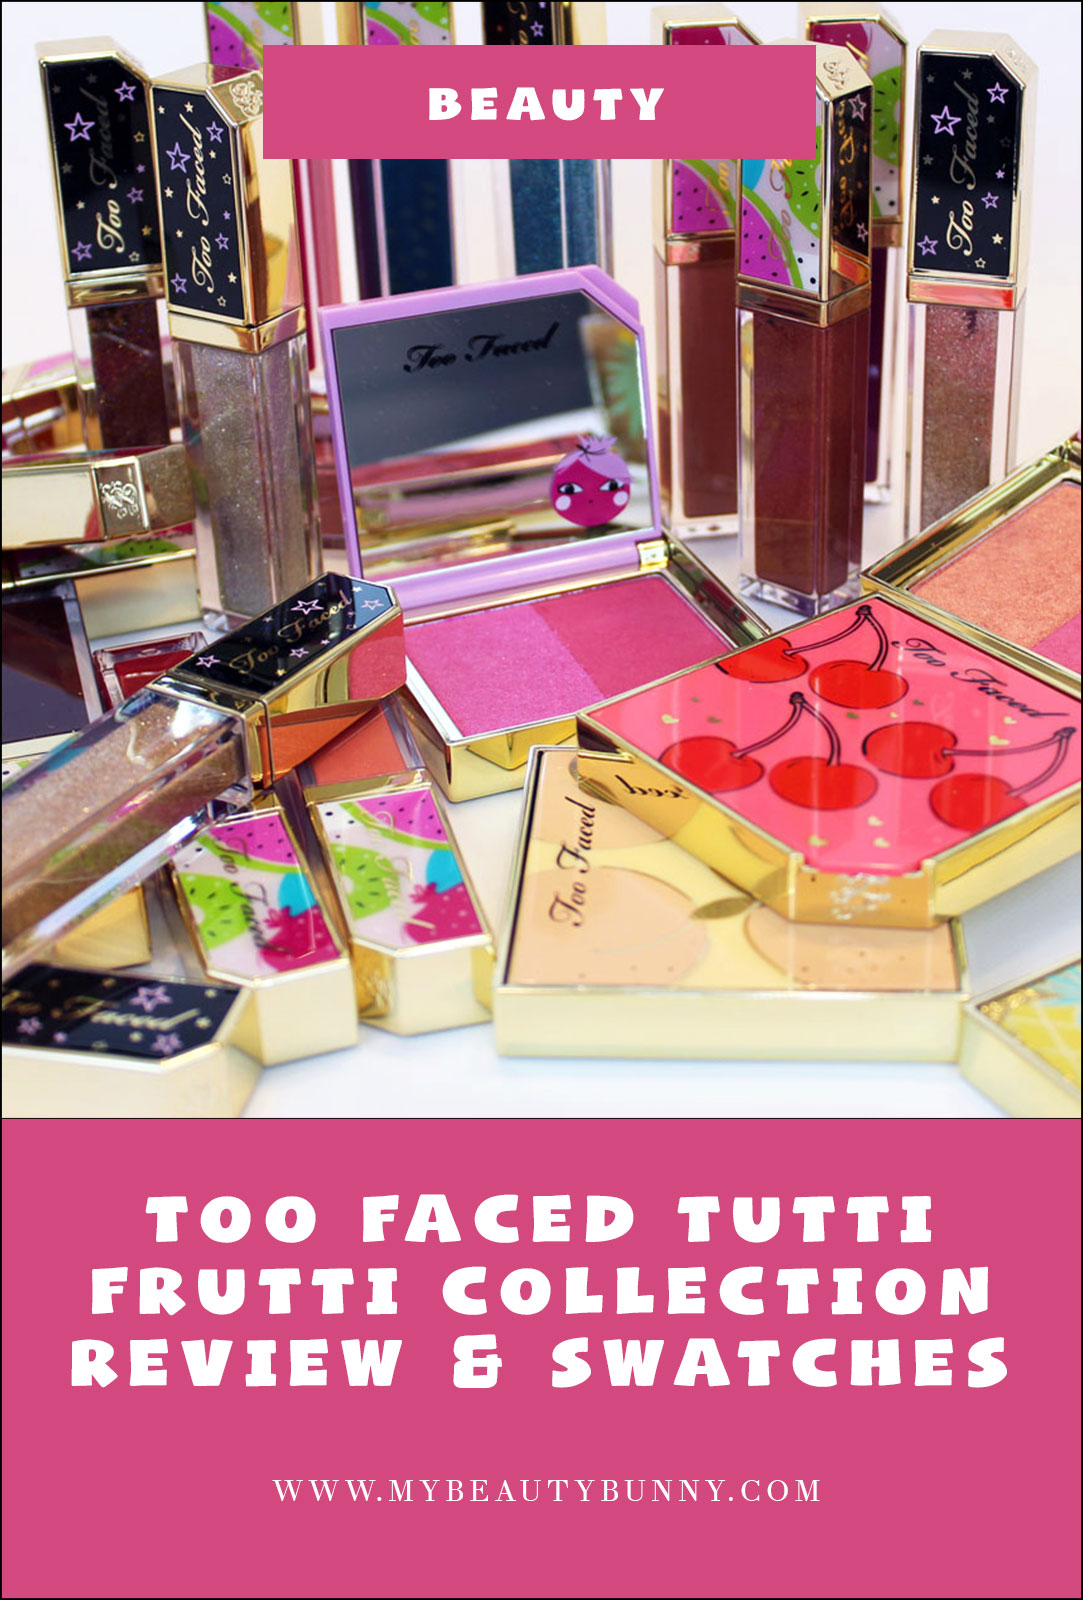 Too Faced Tutti Frutti Collection Review and Swatches by cruelty free blog My Beauty Bunny